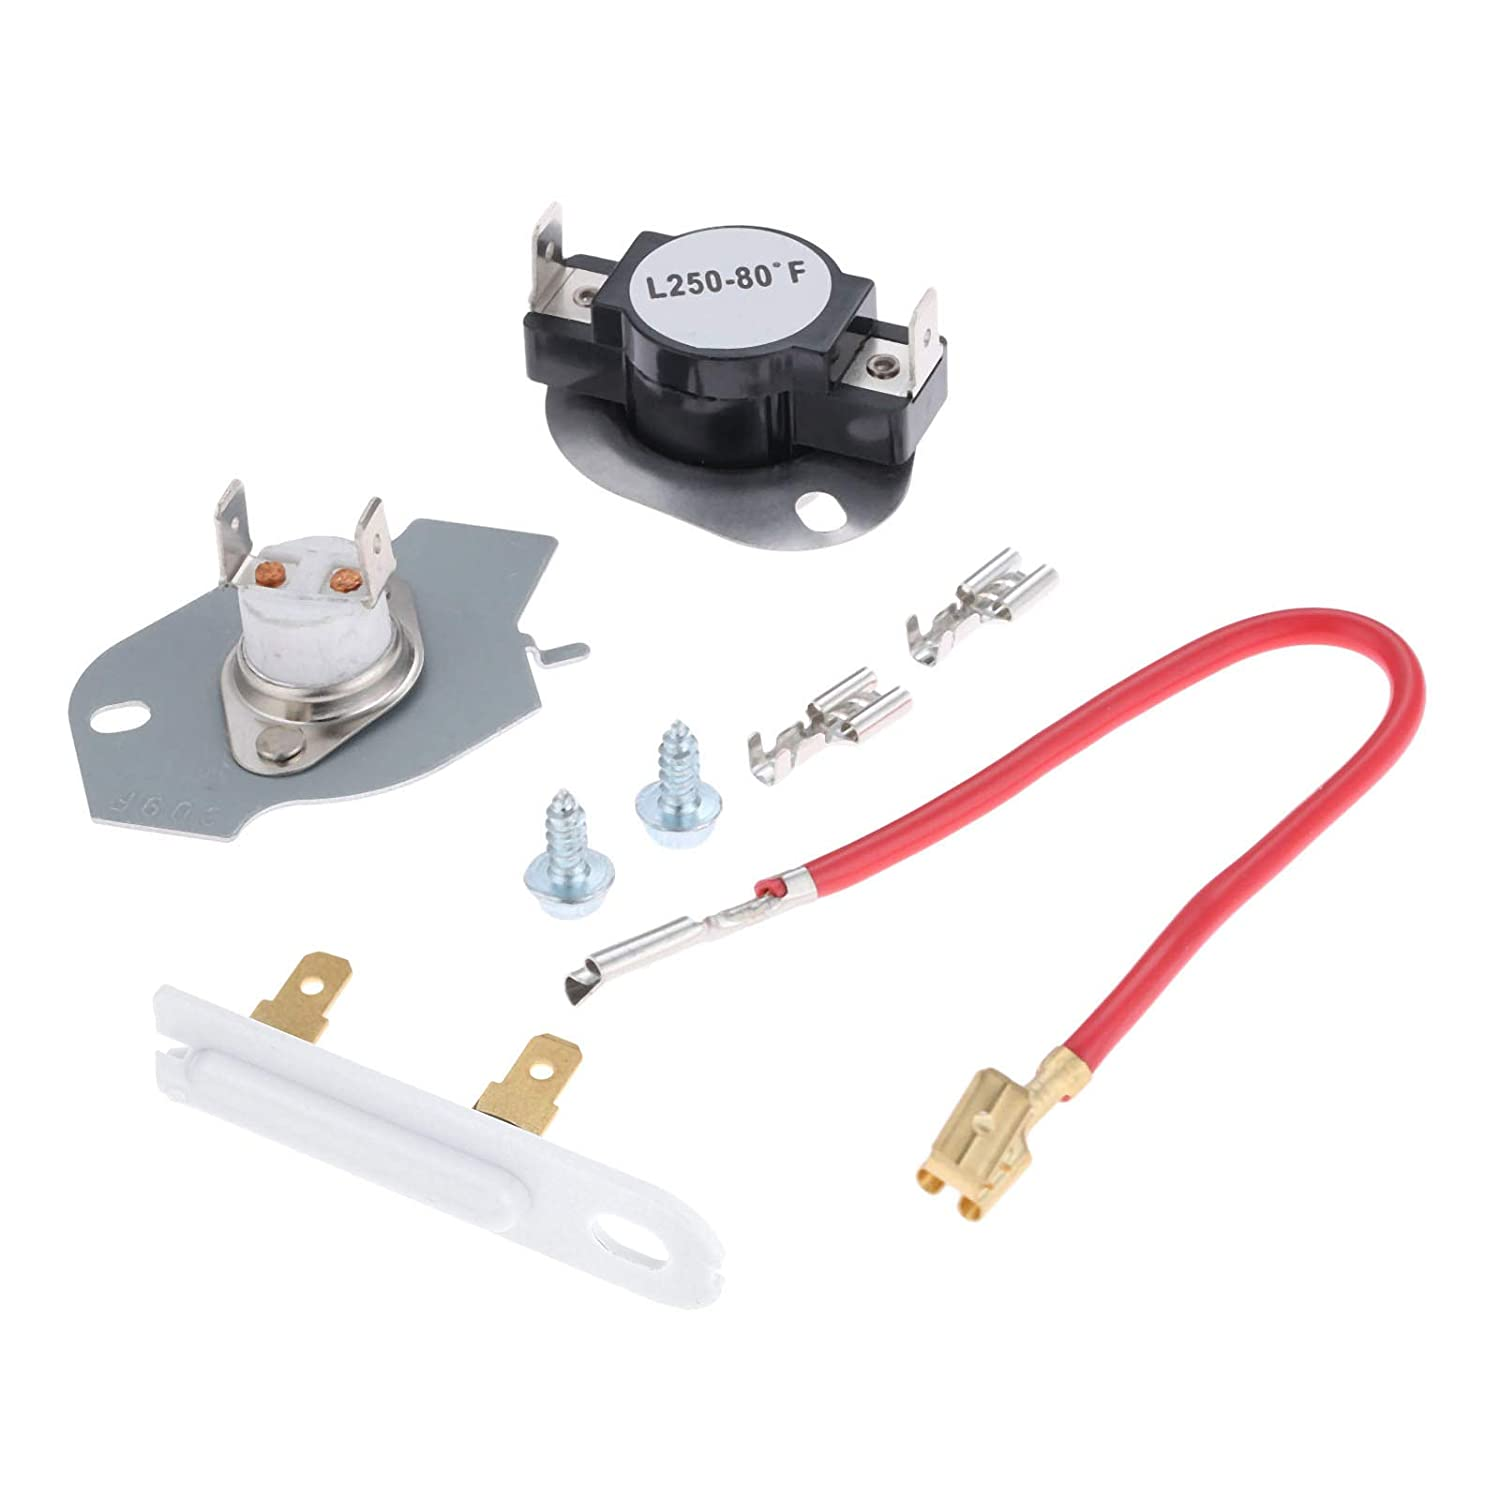 279816 Dryer Thermostat Kit, Replace Part # AP3094244 3399848 3977393 & 3392519 Dryer Thermal Fuse Replace Part # 3388651 306910 3387135, Replacement Fit for Whirlpool, Kenmore, Kitchen Aid, Maytag